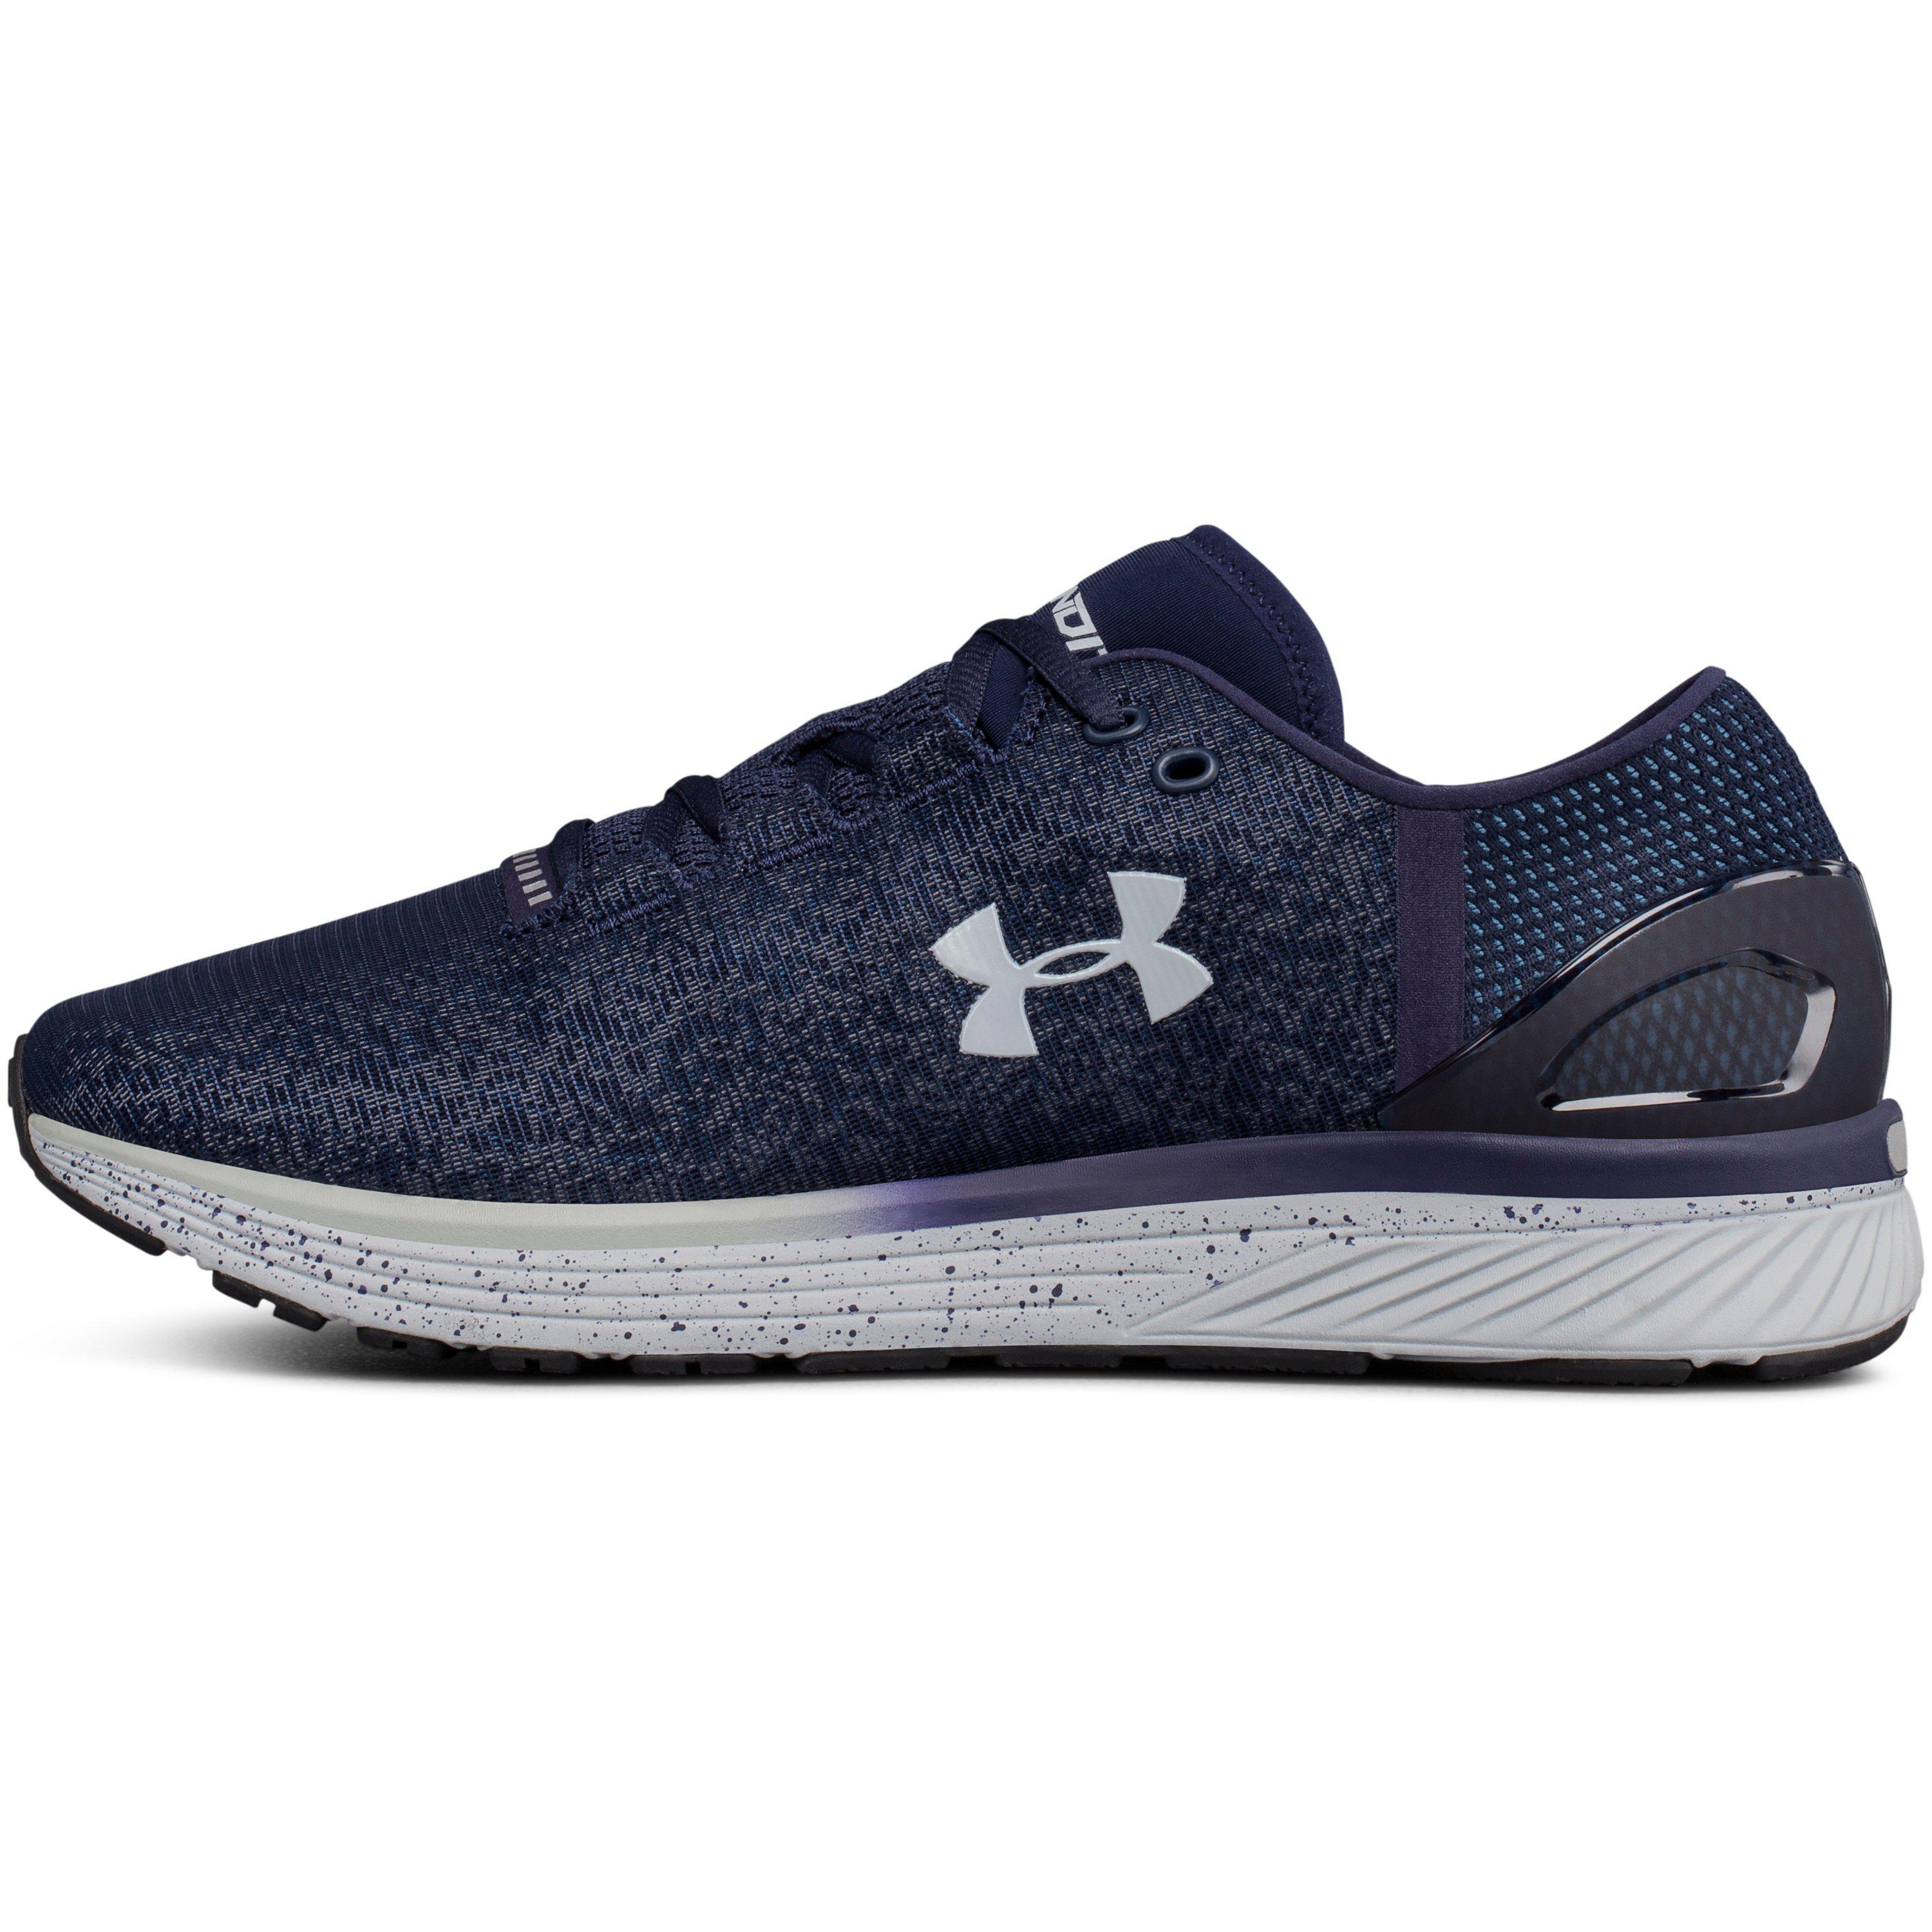 Lyst - Under Armour Men s Ua Charged Bandit 3 Storm Running Shoes in ... 8e58a3592024